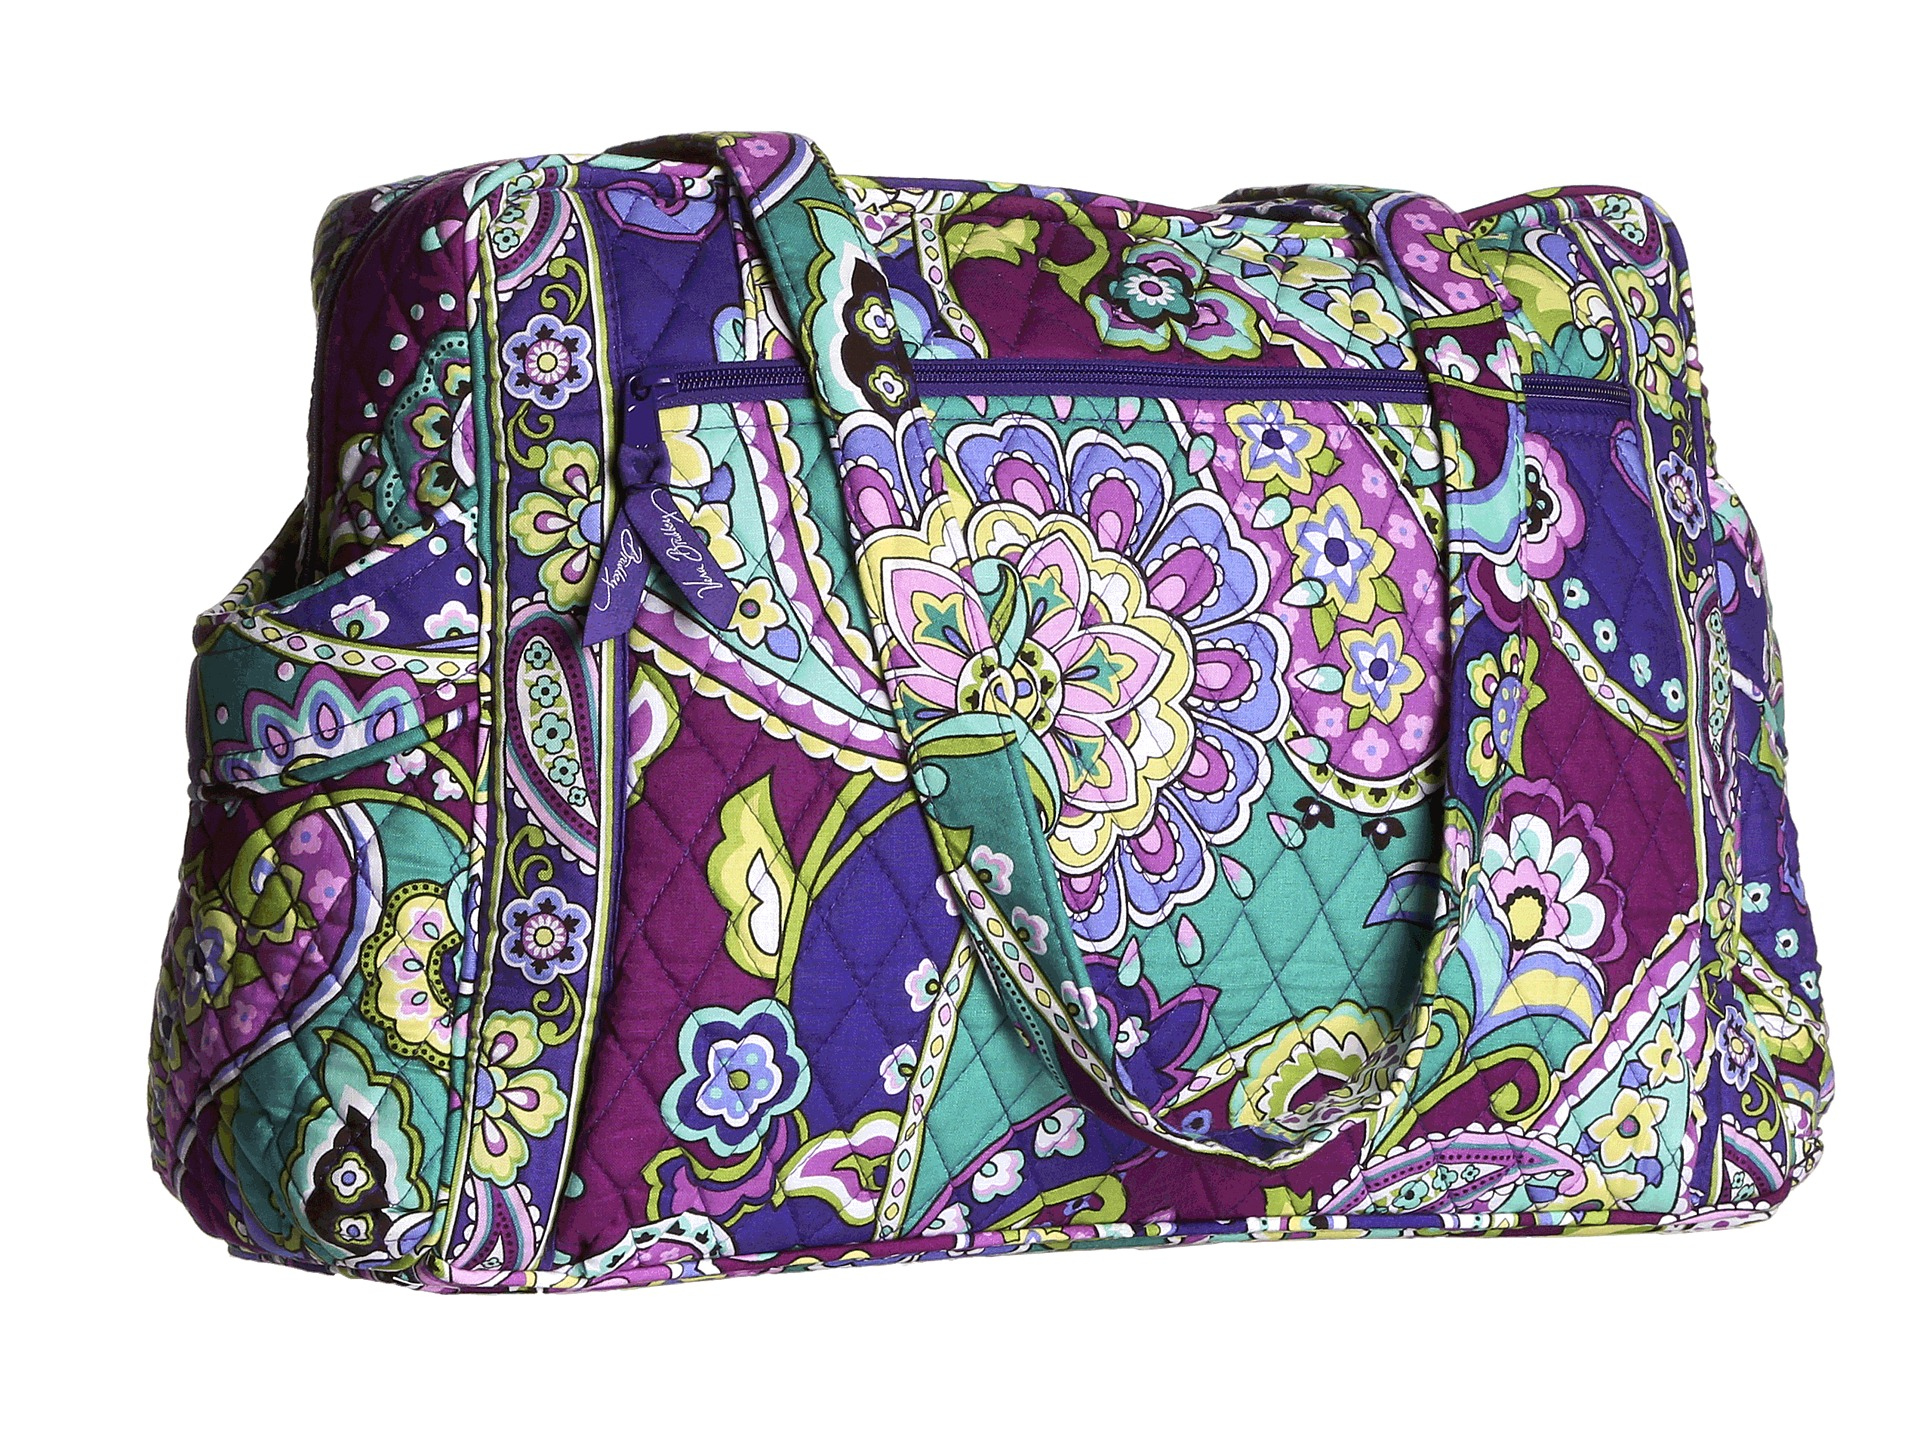 Shop for Vera Bradley luggage and suitcases at eBags - experts in bags and accessories since We offer easy returns, expert advice, and millions of customer reviews.